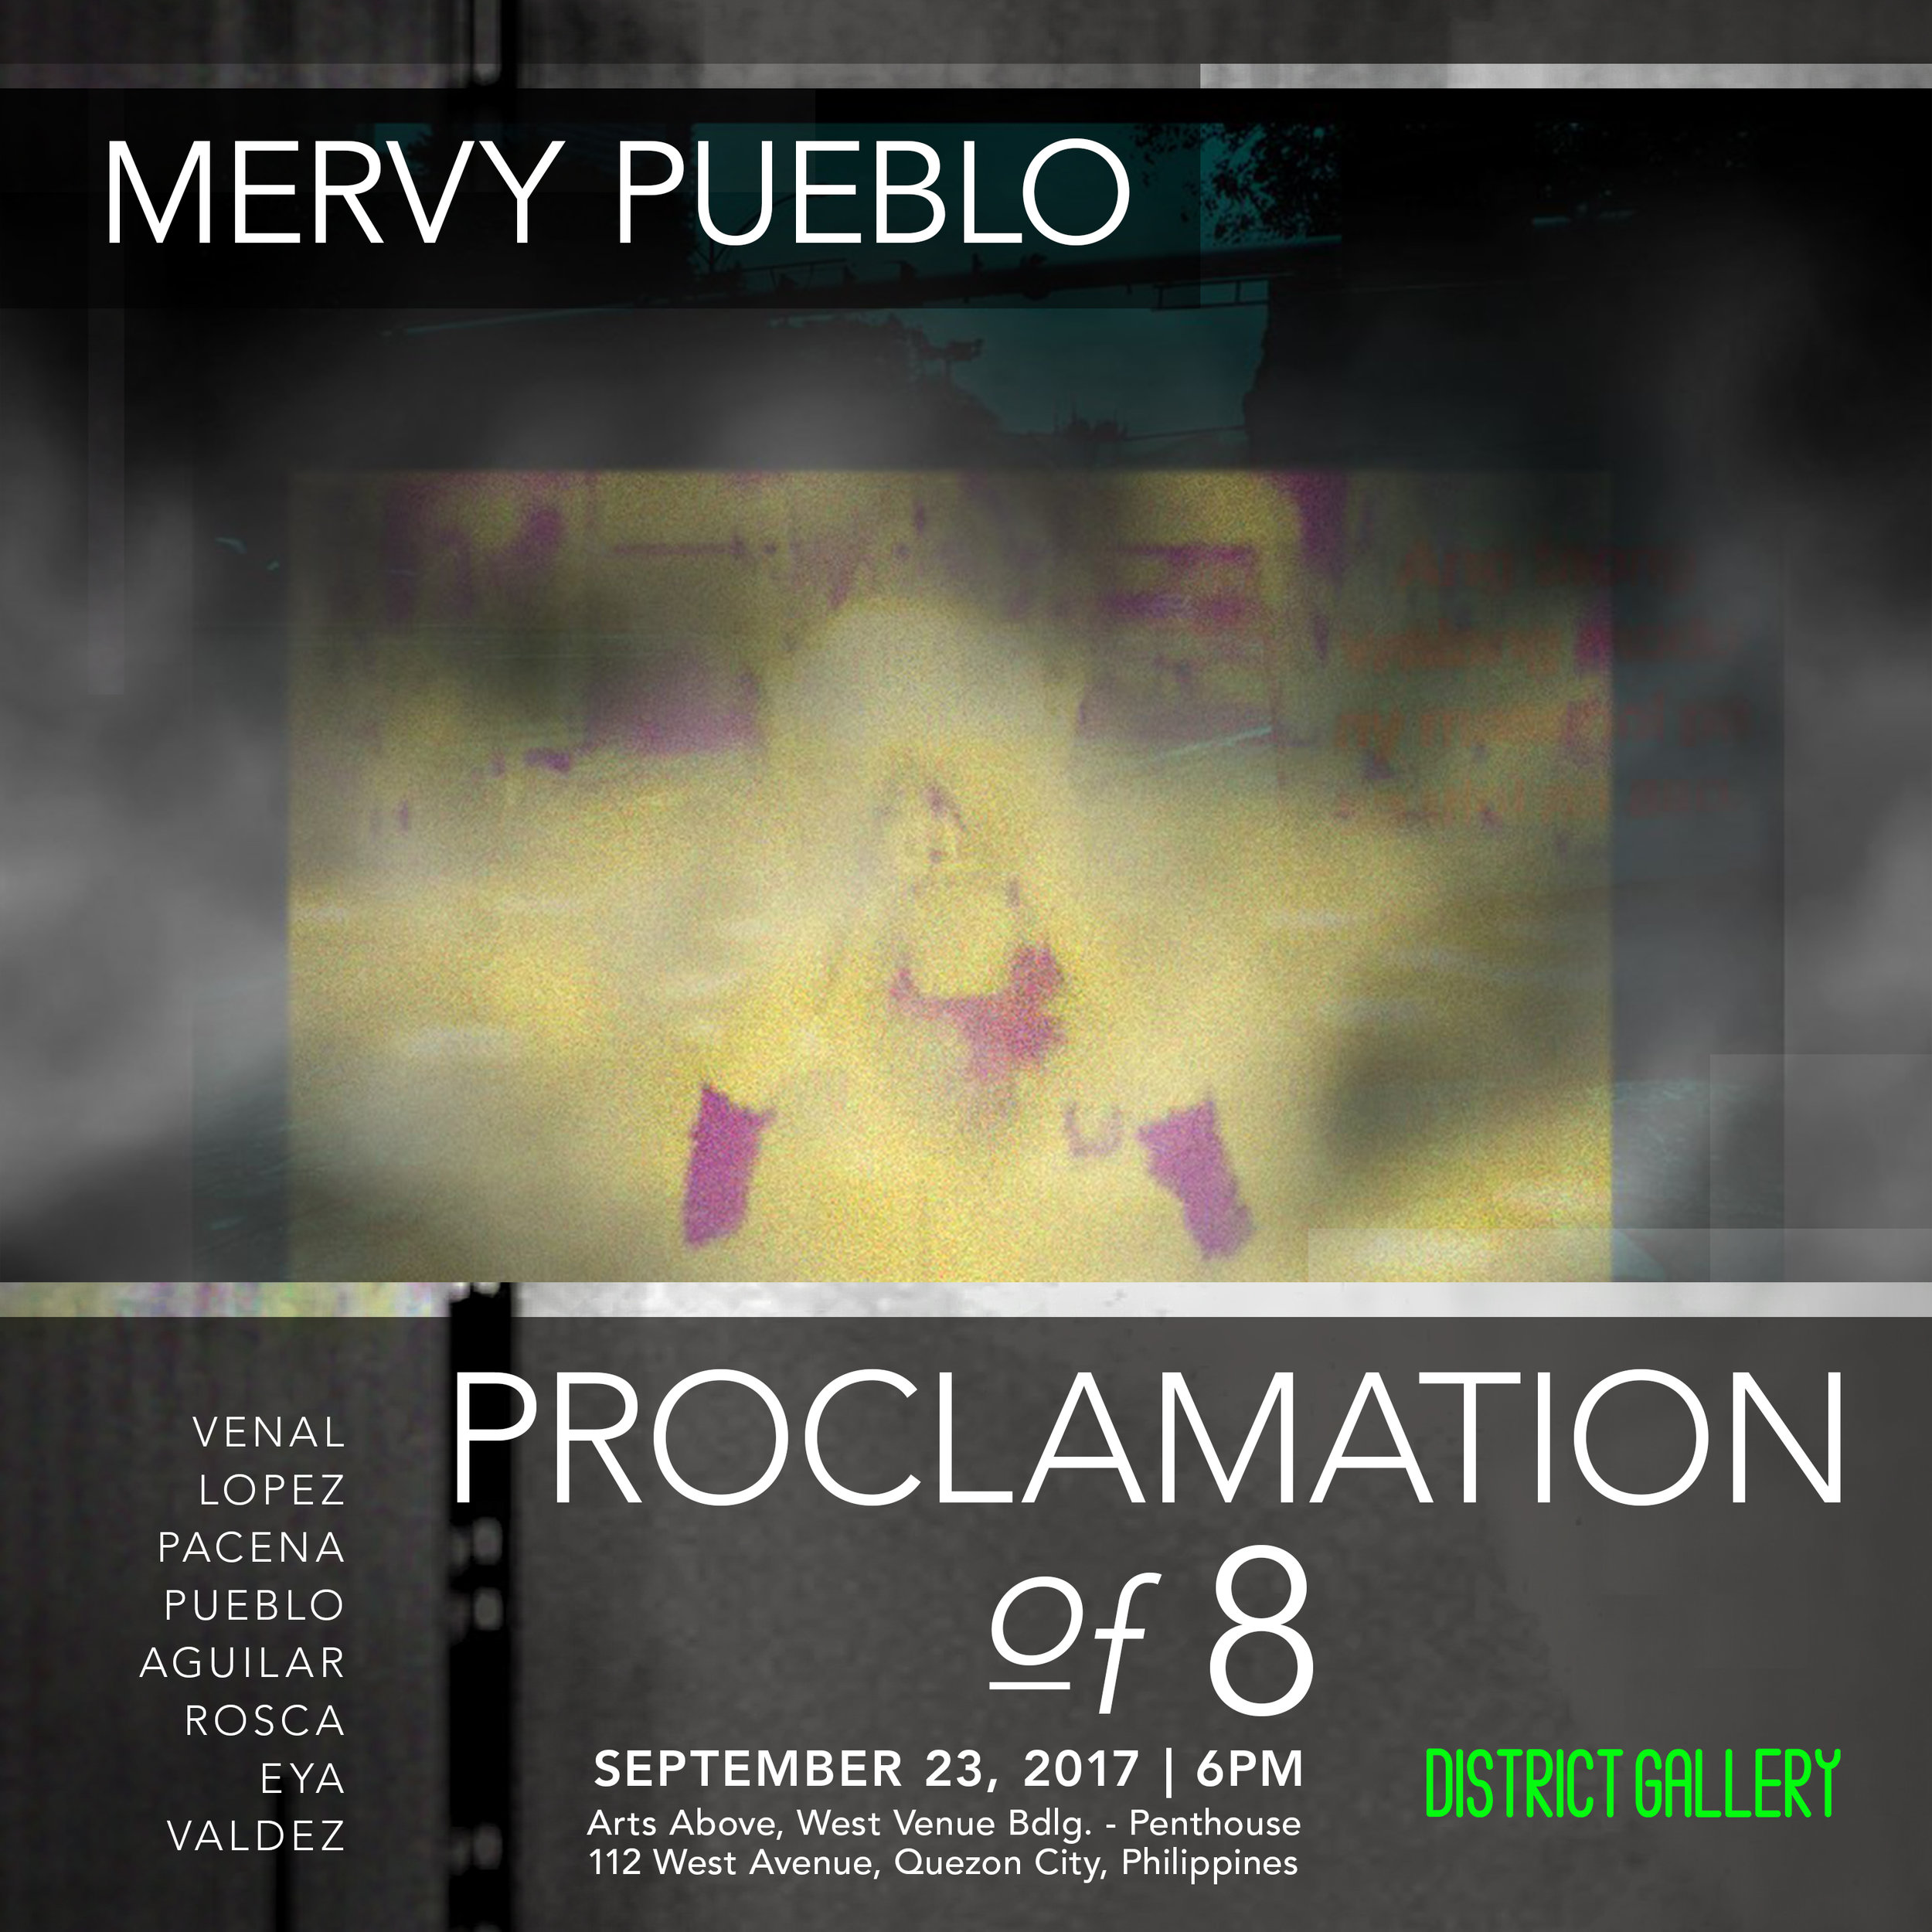 9b PROCLAMATION of Mervy Pueblo.jpg